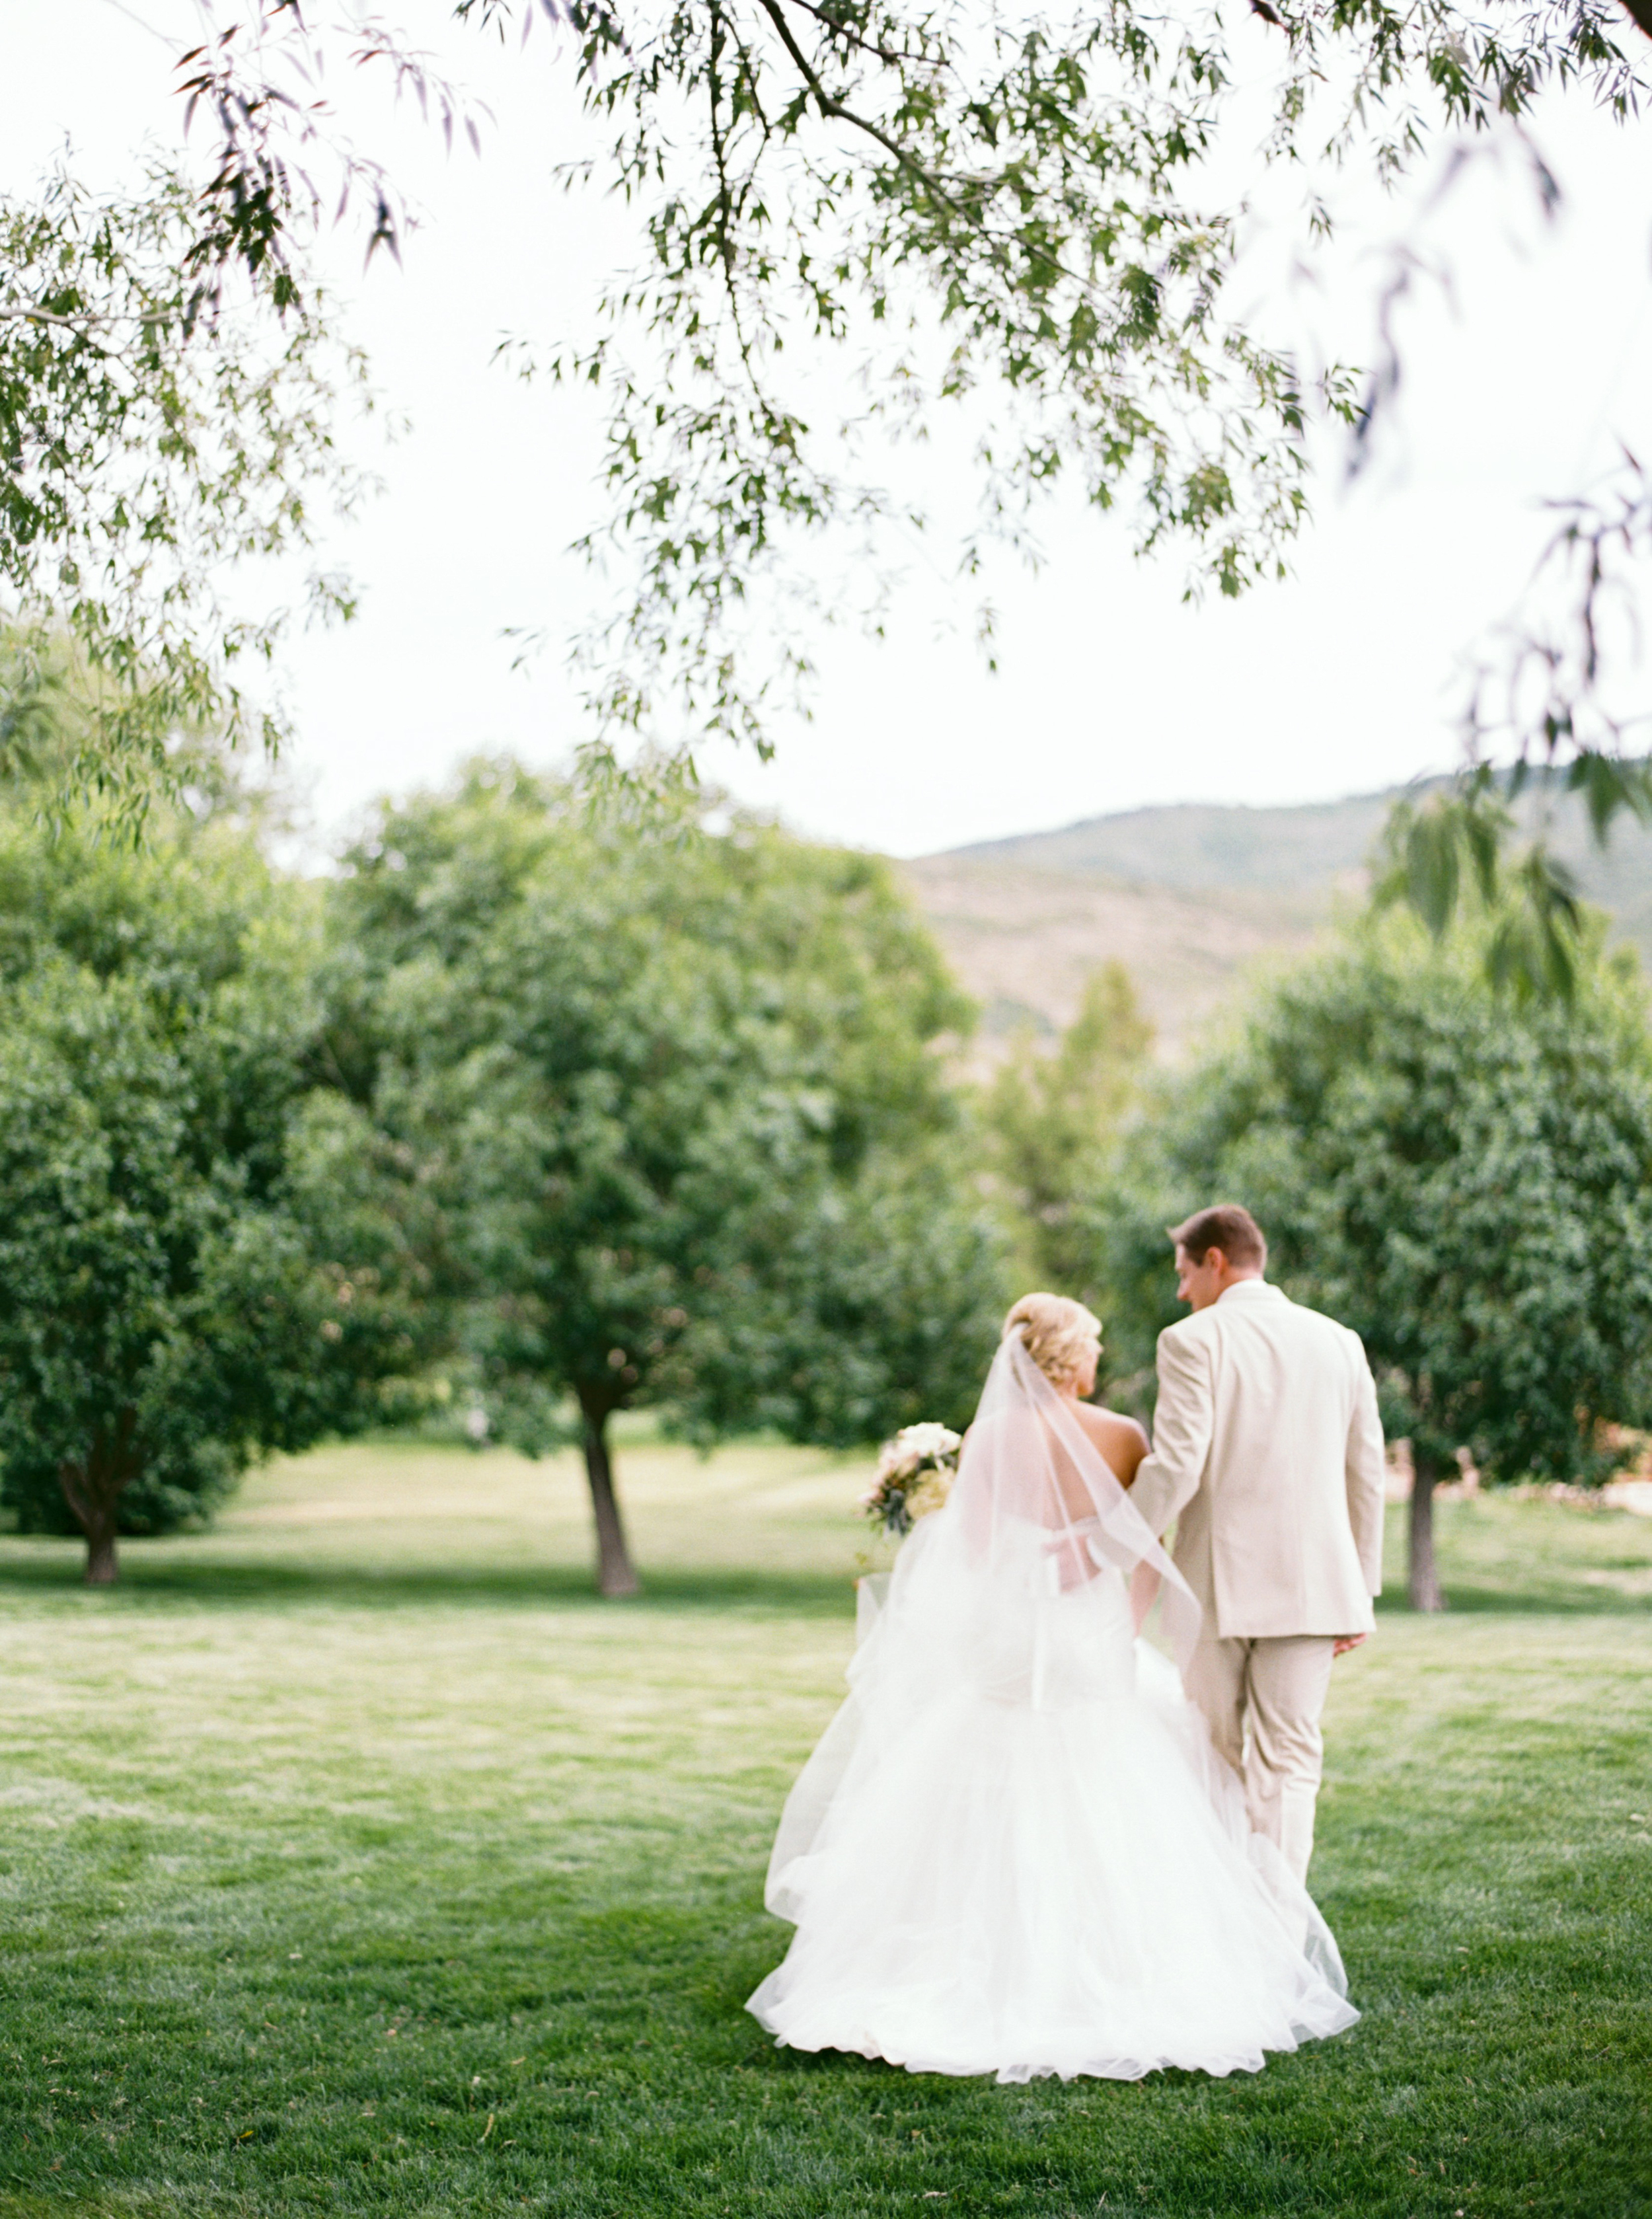 Blush and Gold Rustic High Star Ranch Wedding   Michelle Leo Events   Jacque Lynn Photography